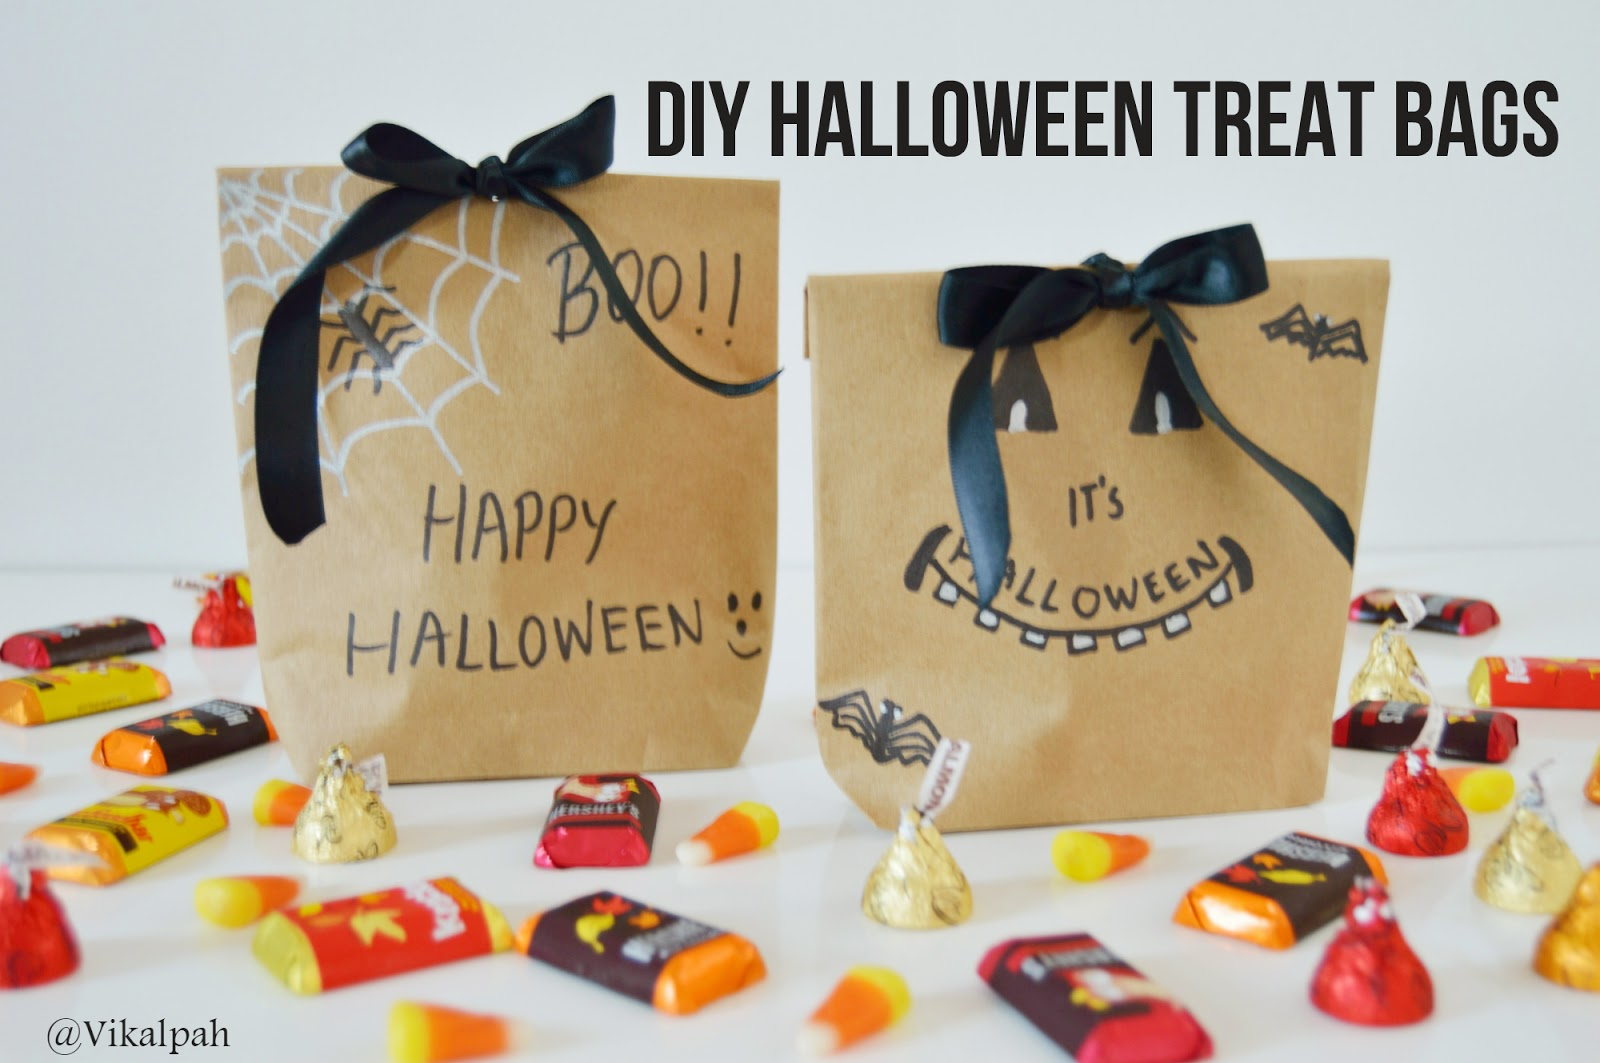 Vikalpah Last Minute Halloween Diys Treat Bags Decor Ideas